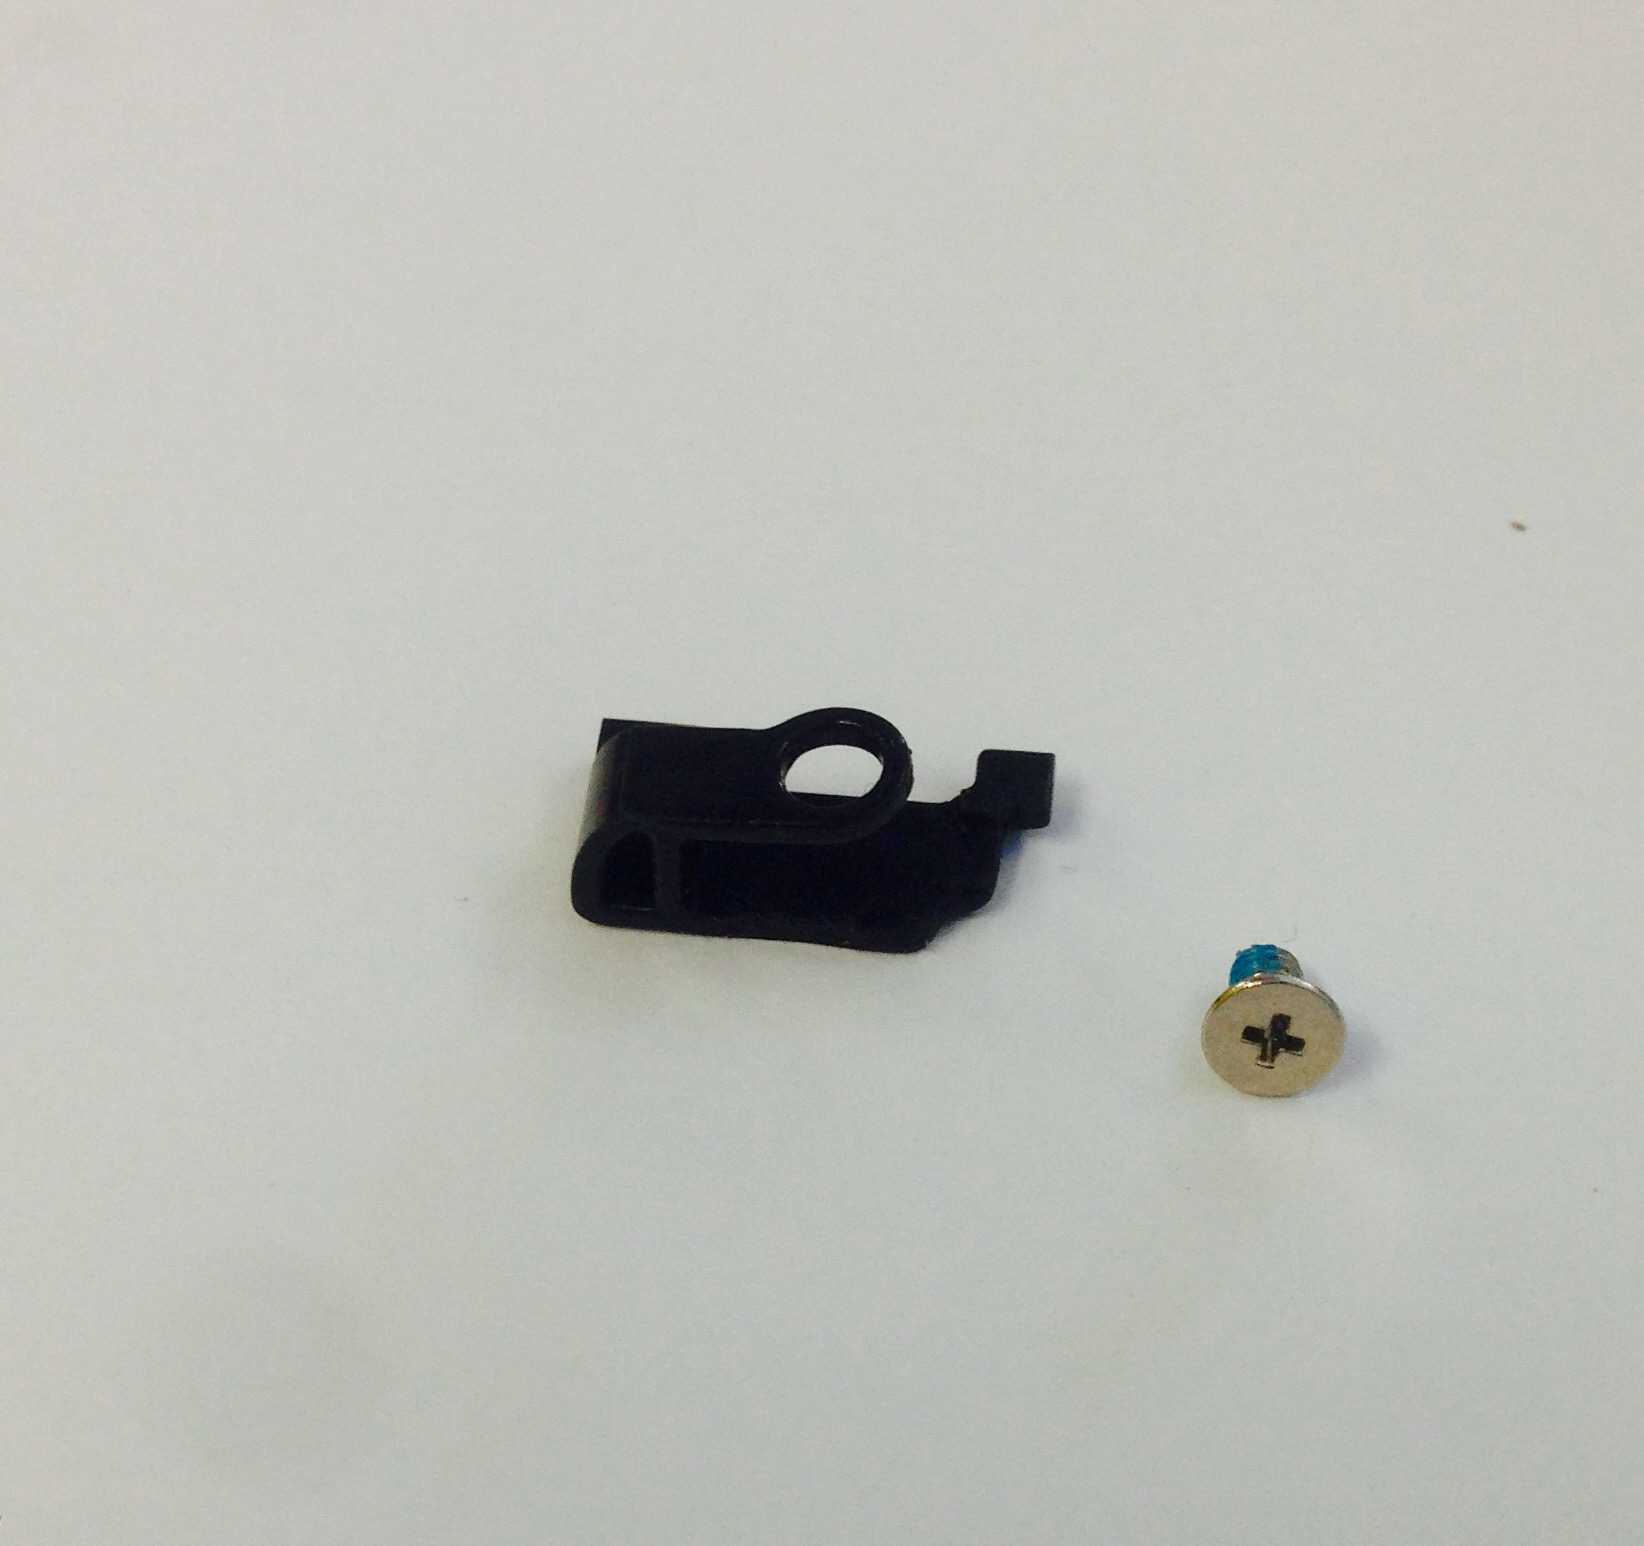 "Unibody Macbook Pro 13/15"" Airport Retainer Clip"